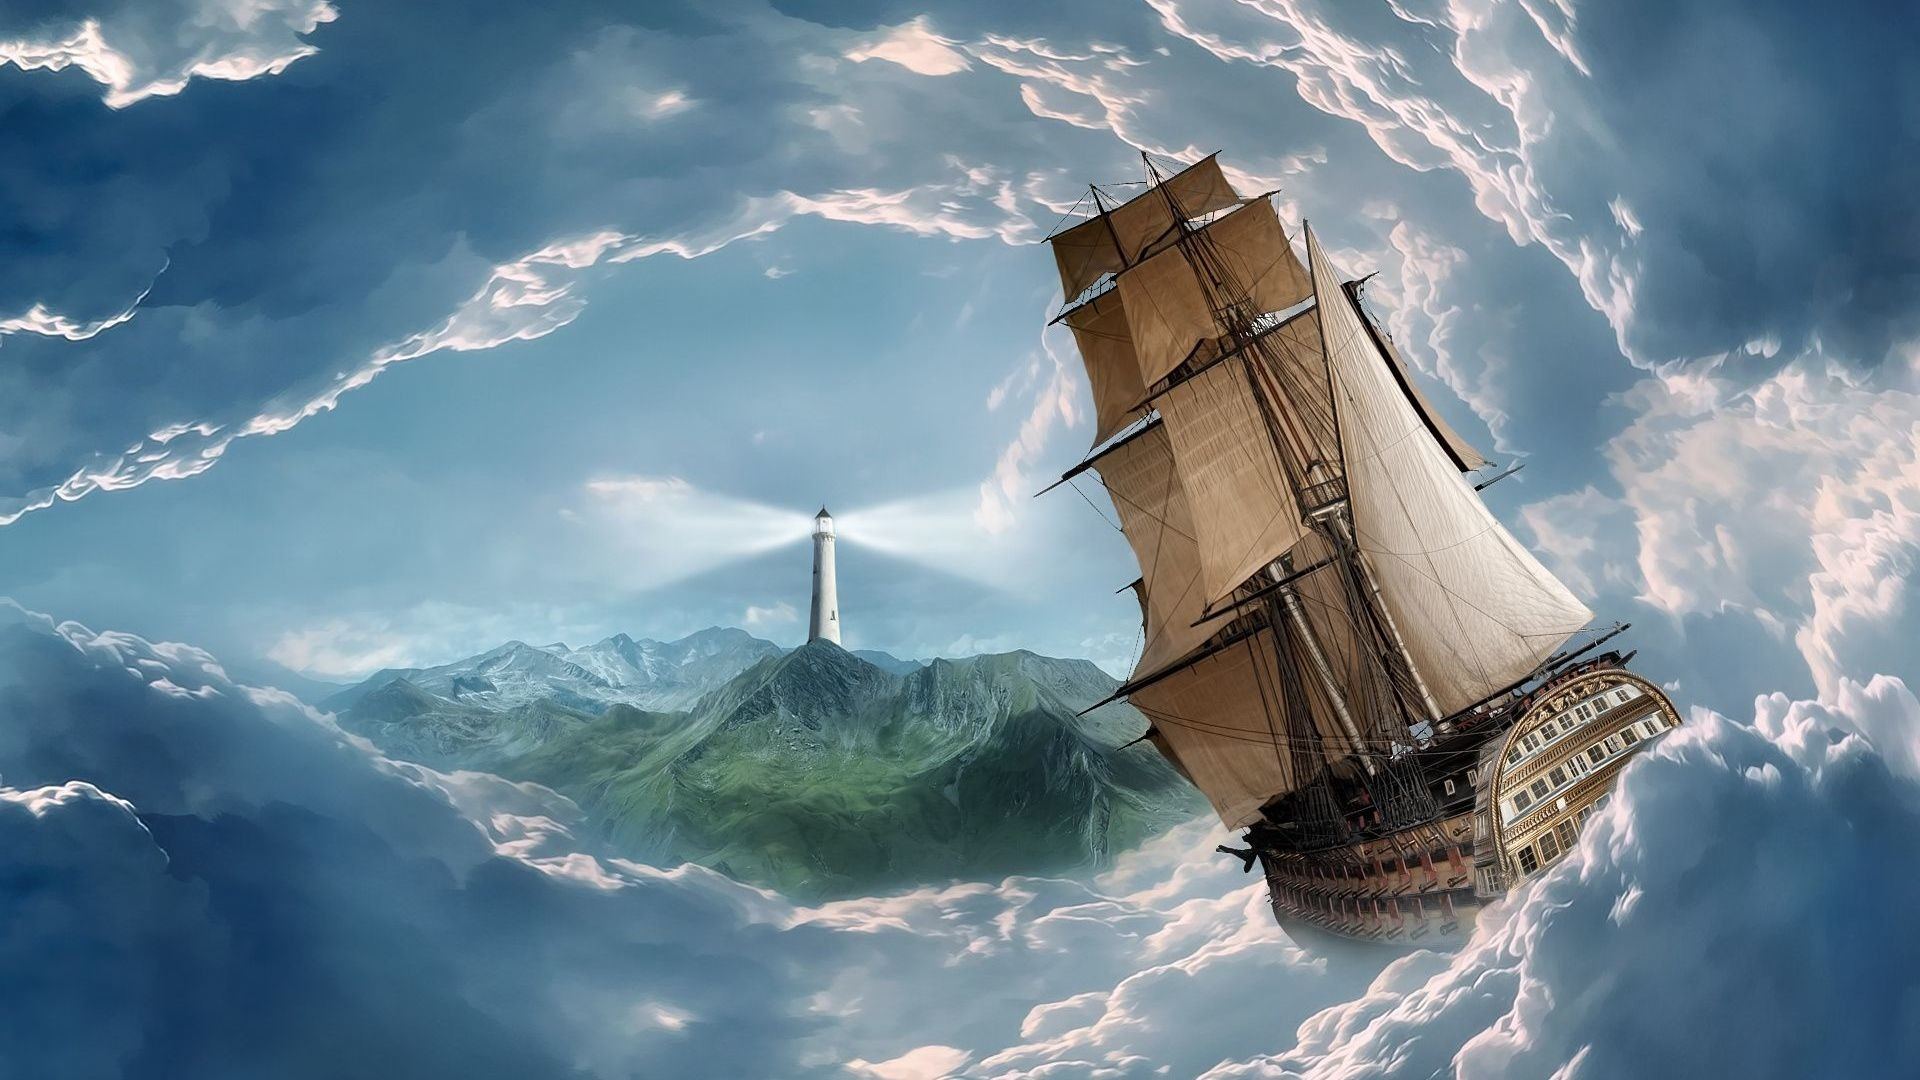 Ship Sailing In The Clouds HD Heavenly Wallpaper Free HD Wallpaper .